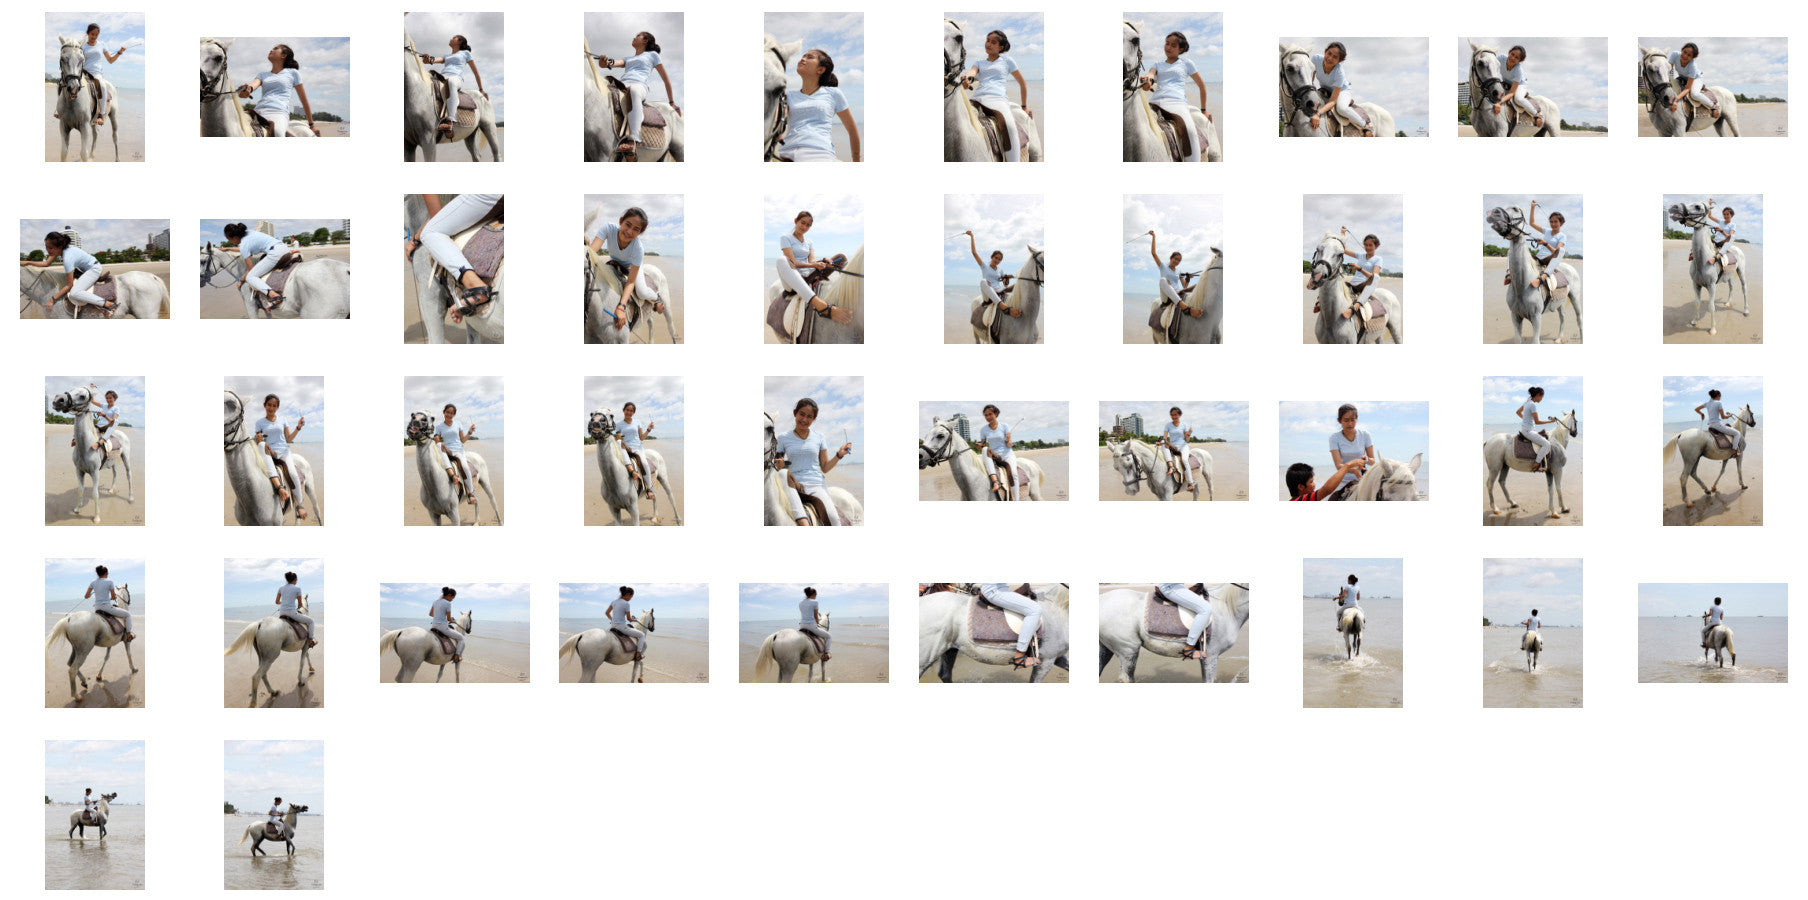 Som in Jodhpurs Riding with Saddle on White Arabian Horse, Part 2 - Riding.Vision